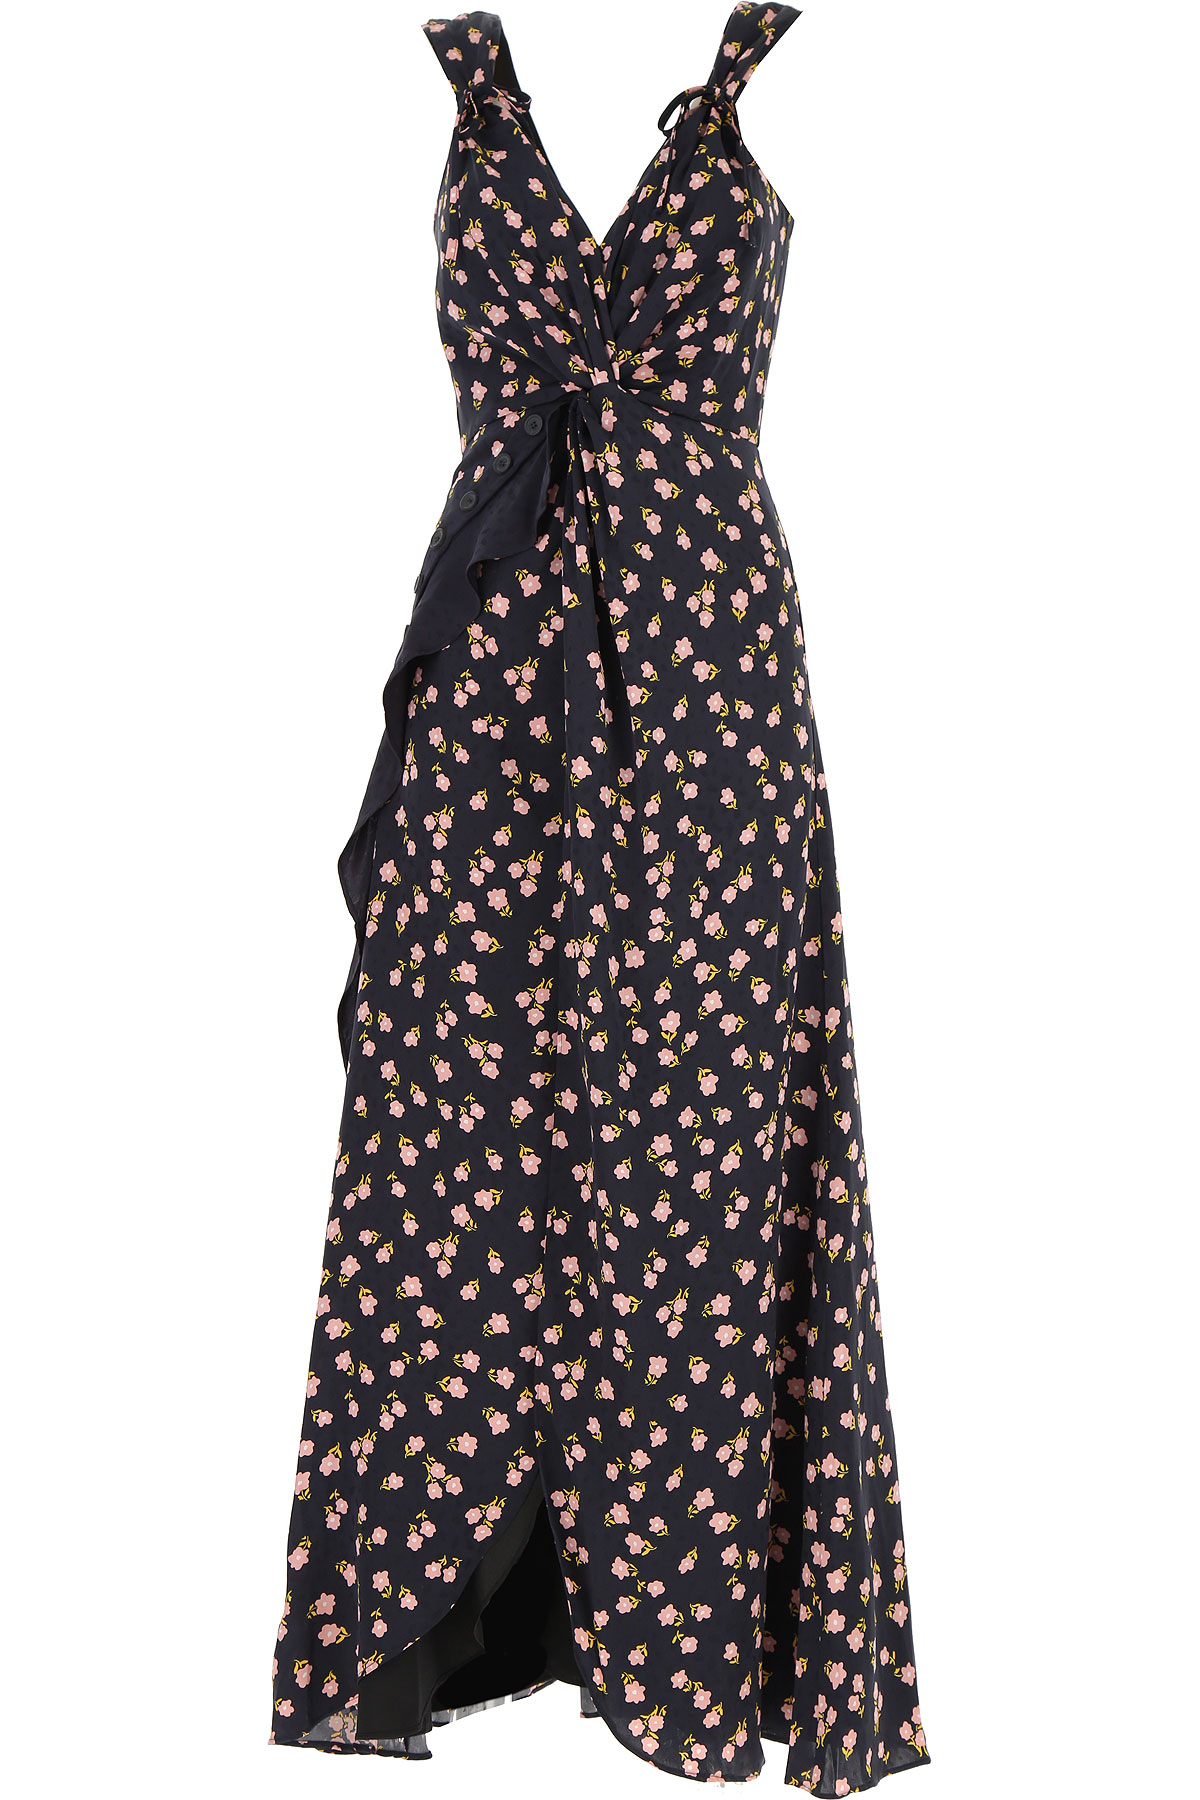 Self-portrait Dress for Women, Evening Cocktail Party On Sale in Outlet, Black, Viscose, 2019, L - UK 12 - IT 44 M - UK 10 - IT 42